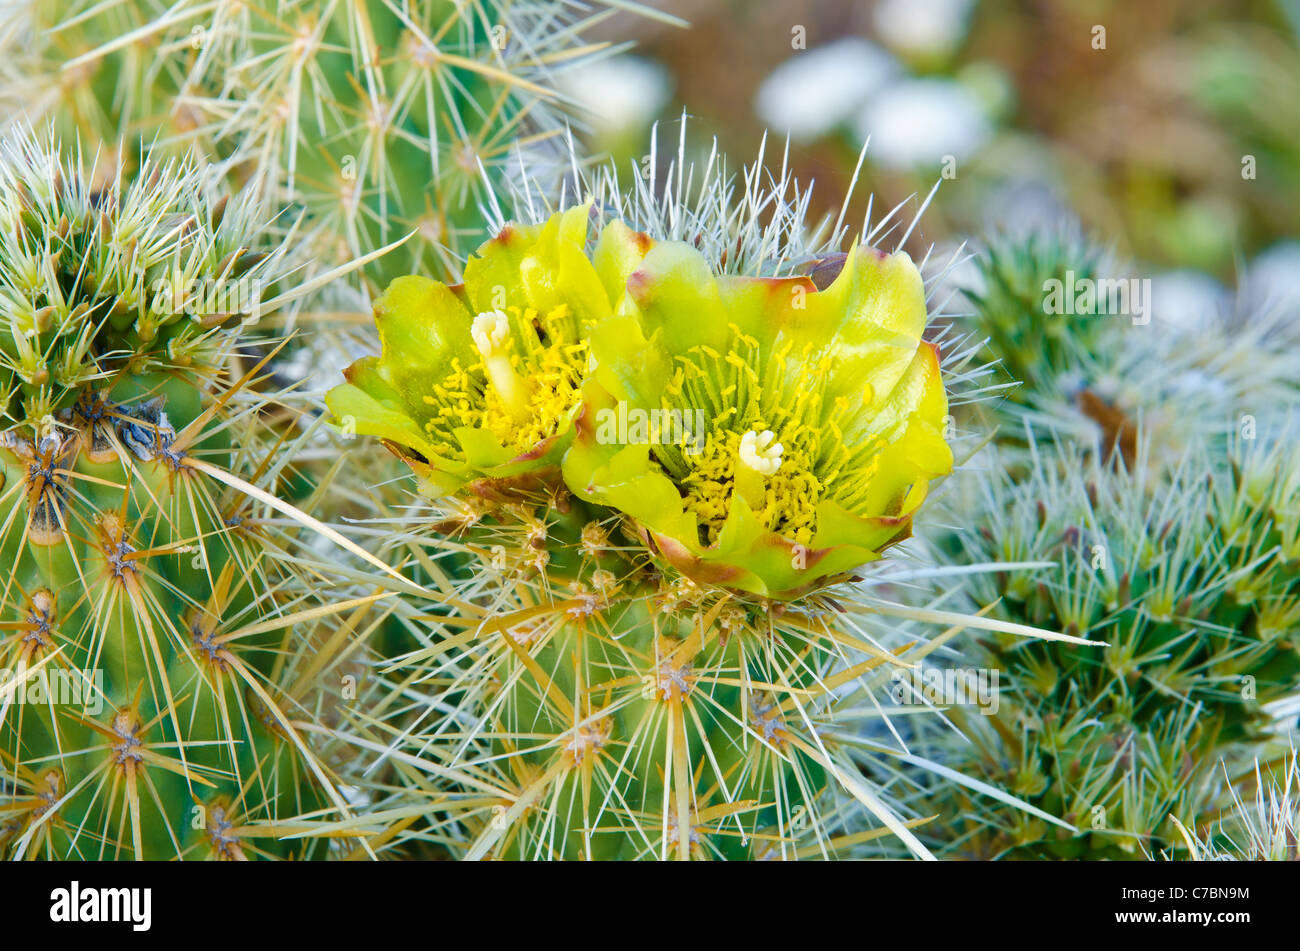 Buckhorn Cholla flower (Cylindropuntia acanthocarpa), Anza-Borrego Desert State Park, California USA Stock Photo